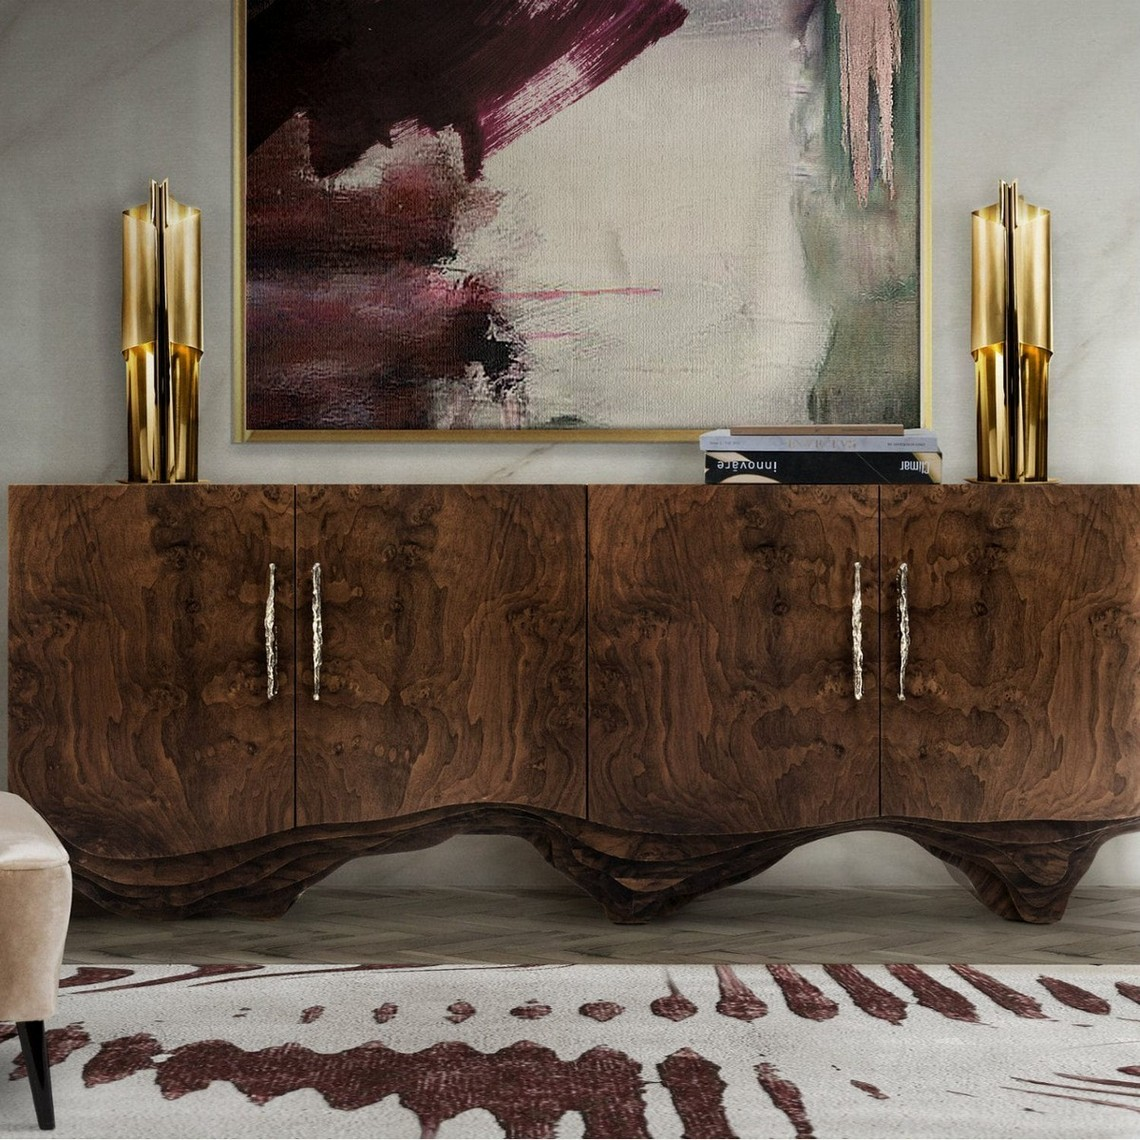 Trendy Sideboards For 2019 (Part II) trendy sideboards Trendy Sideboards For 2019 (Part II) huang 1